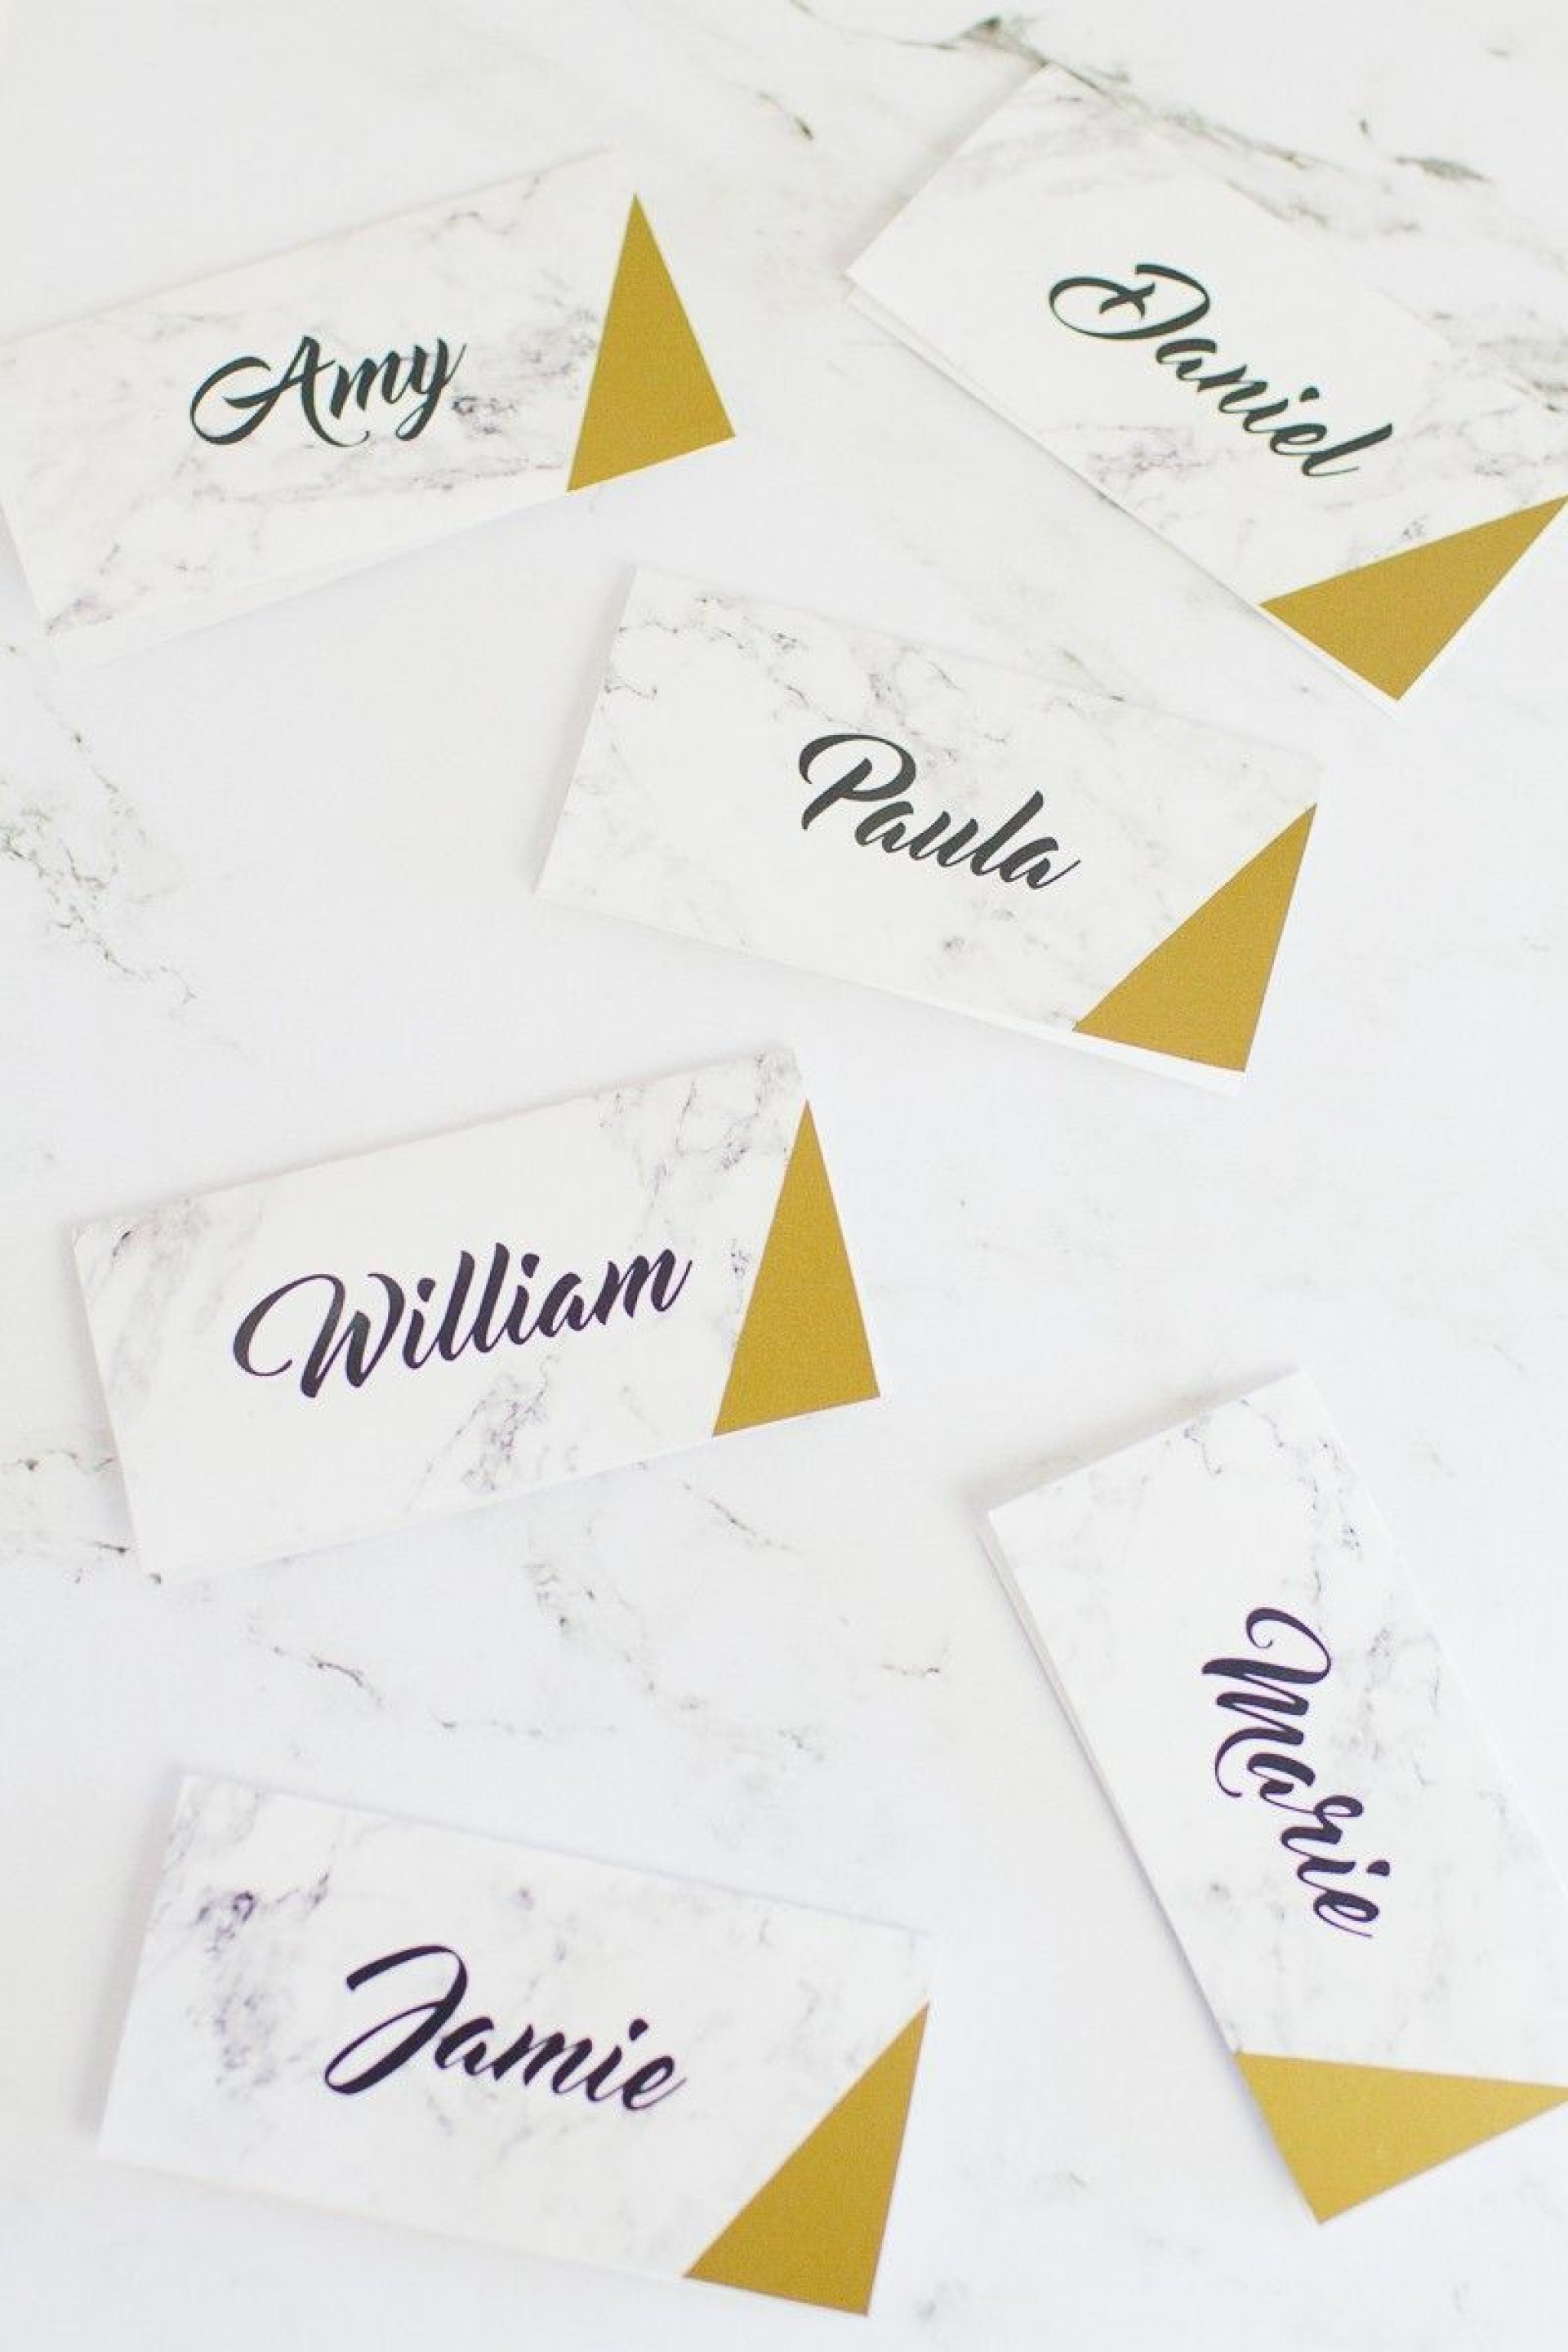 001 Simple Name Place Card Template Free Download Highest Quality  Psd Vector1920